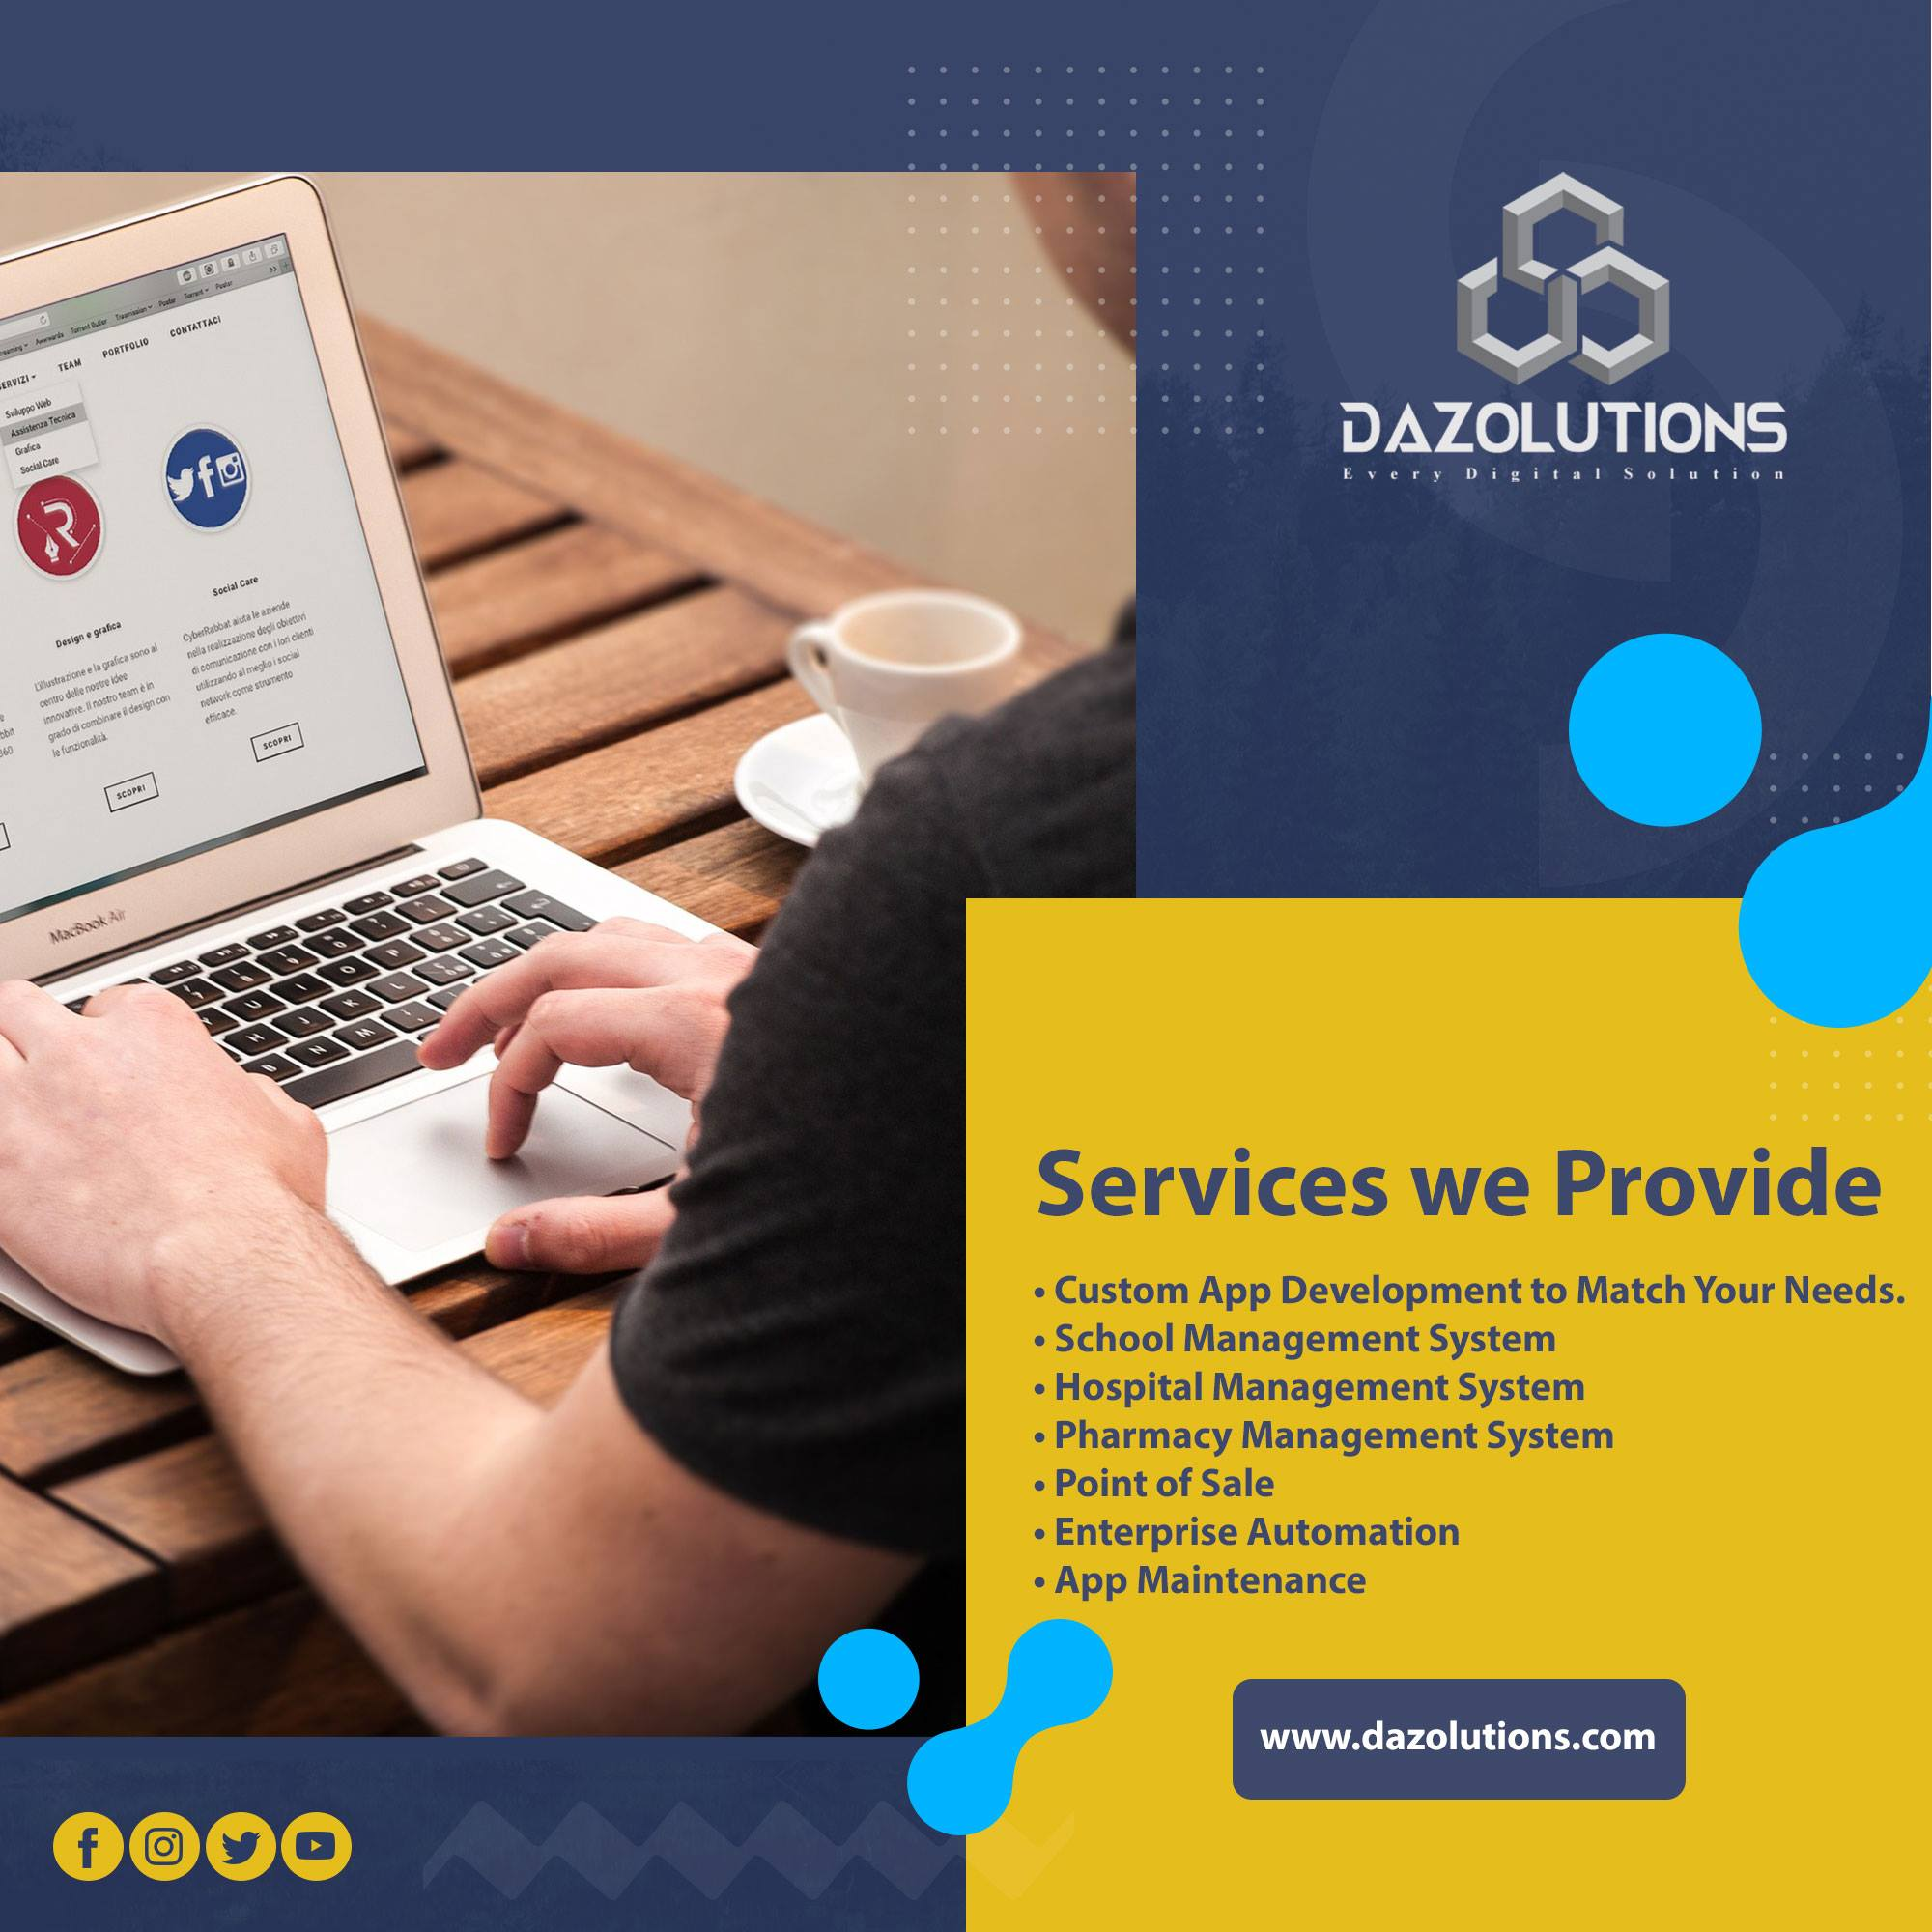 I will design and build a beautiful website for your business